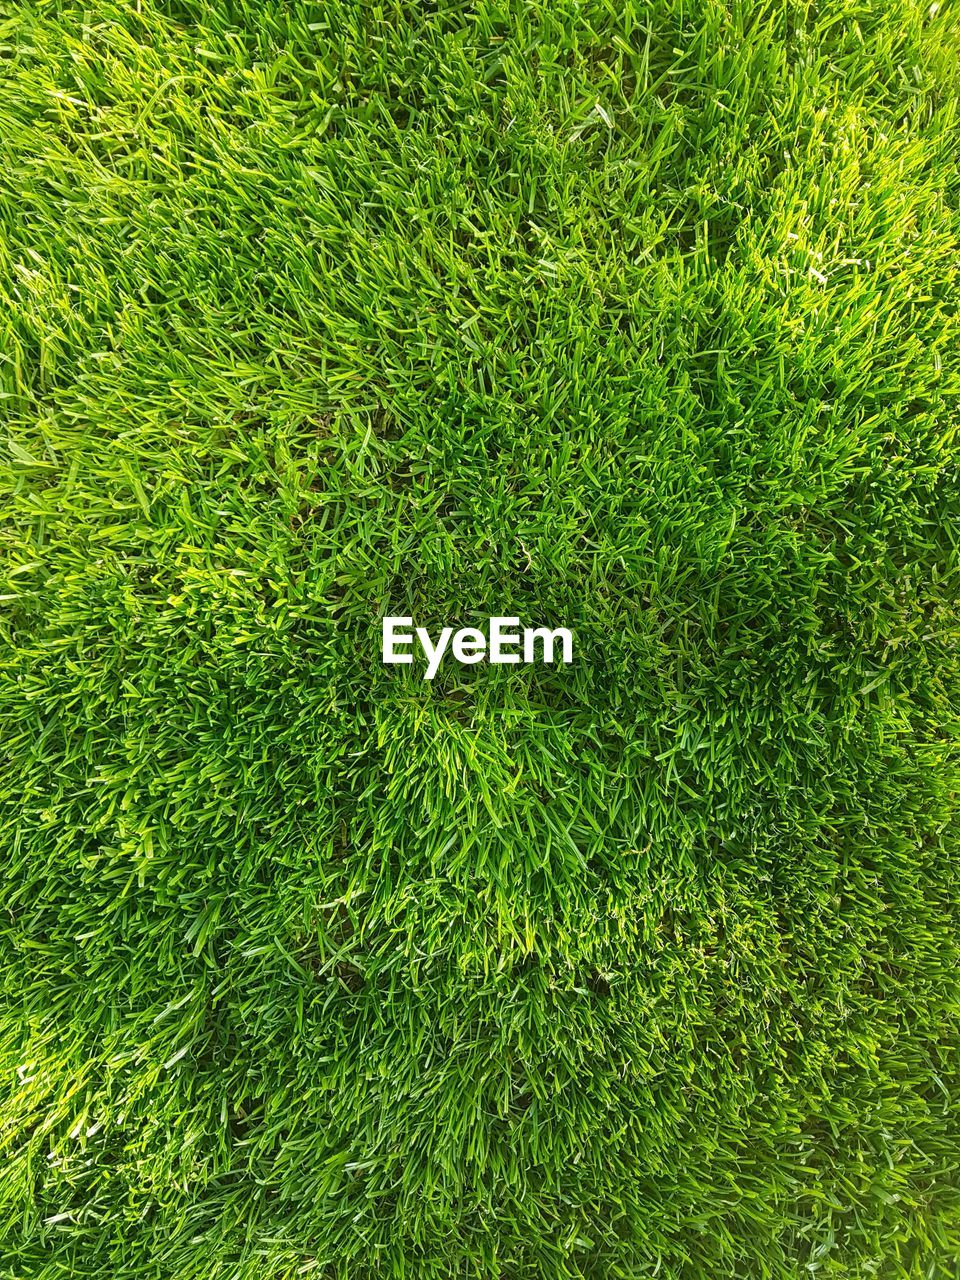 green color, plant, full frame, growth, grass, backgrounds, nature, beauty in nature, no people, day, land, foliage, lush foliage, field, high angle view, outdoors, tranquility, close-up, lawn, sunlight